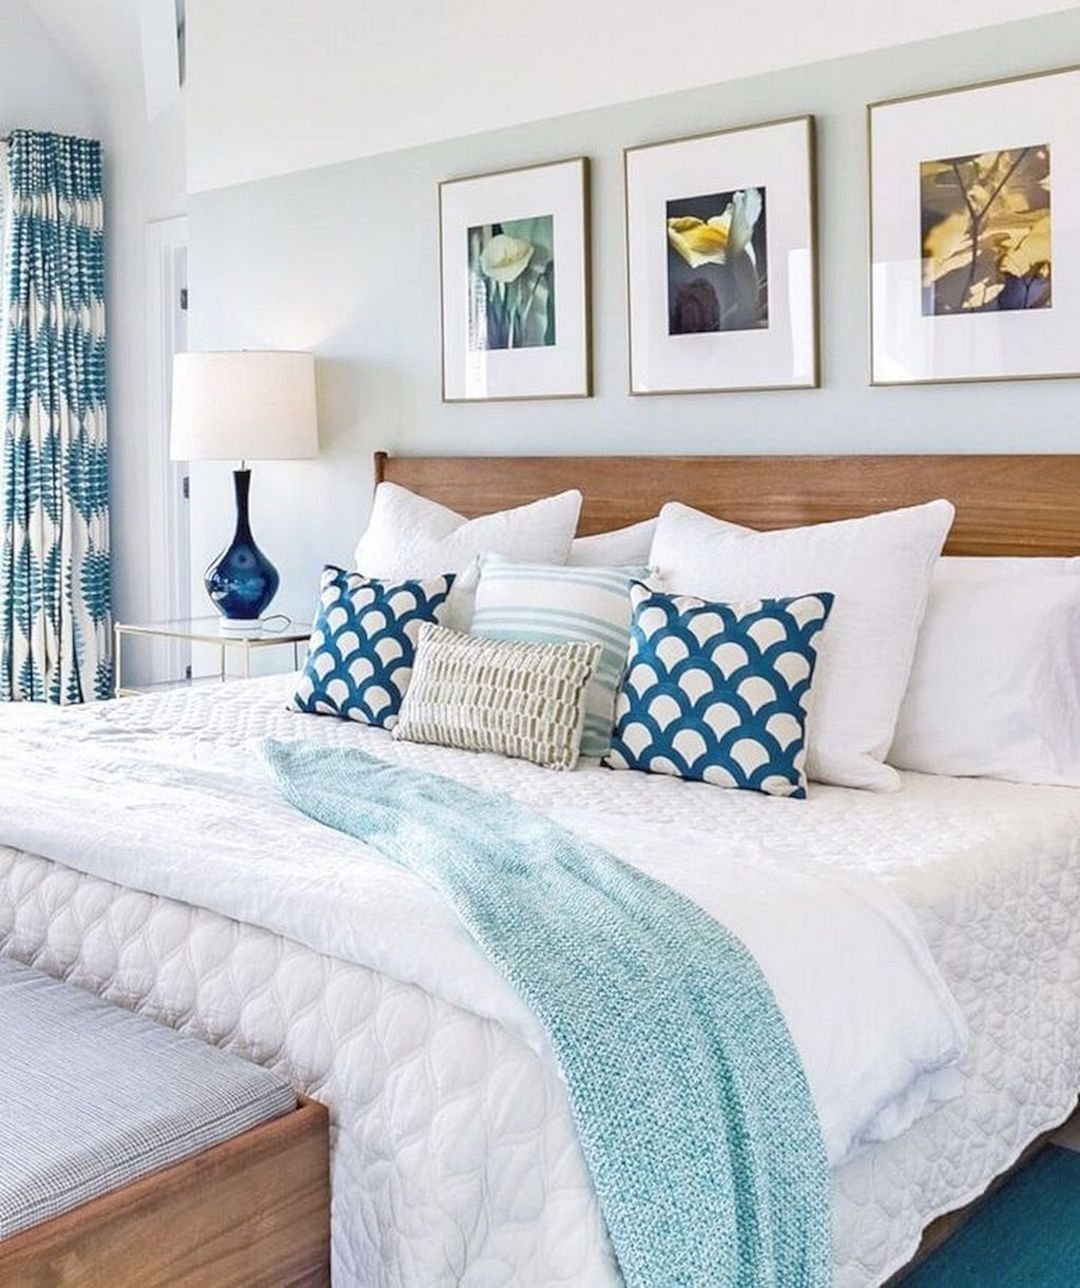 7 Awesome Bedroom With Beach Decoration Ideas You Must Try in 7